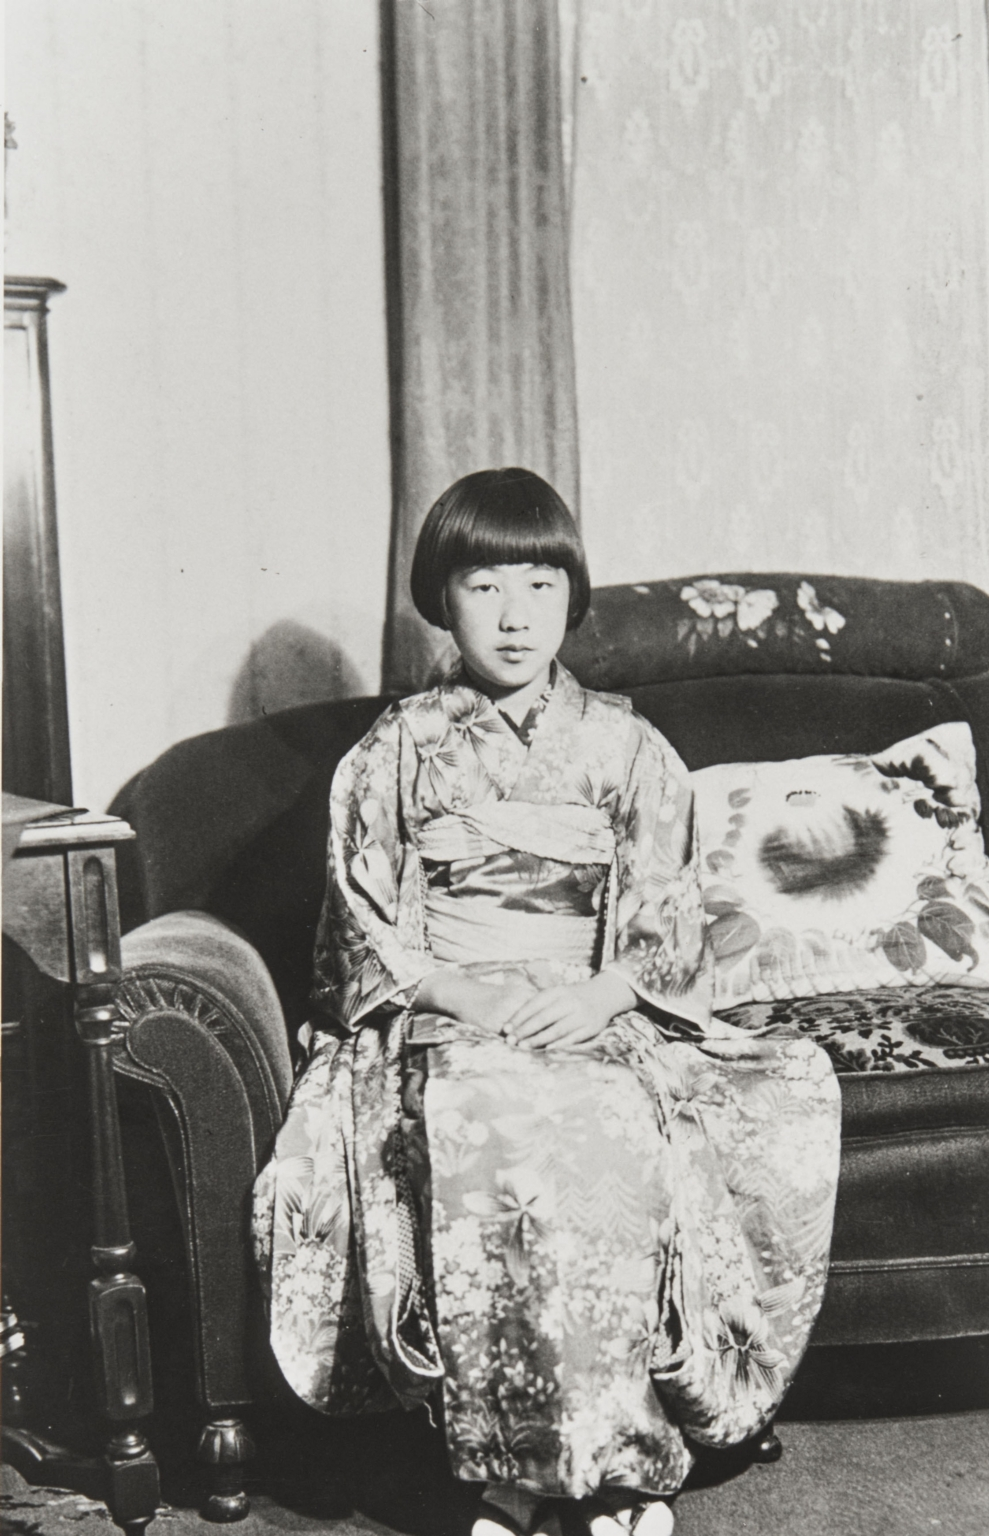 June Tokuyama as a young girl in Lompoc, about 1930. She was a 1938 Lompoc High School graduate and a member of the Scholarship Society.